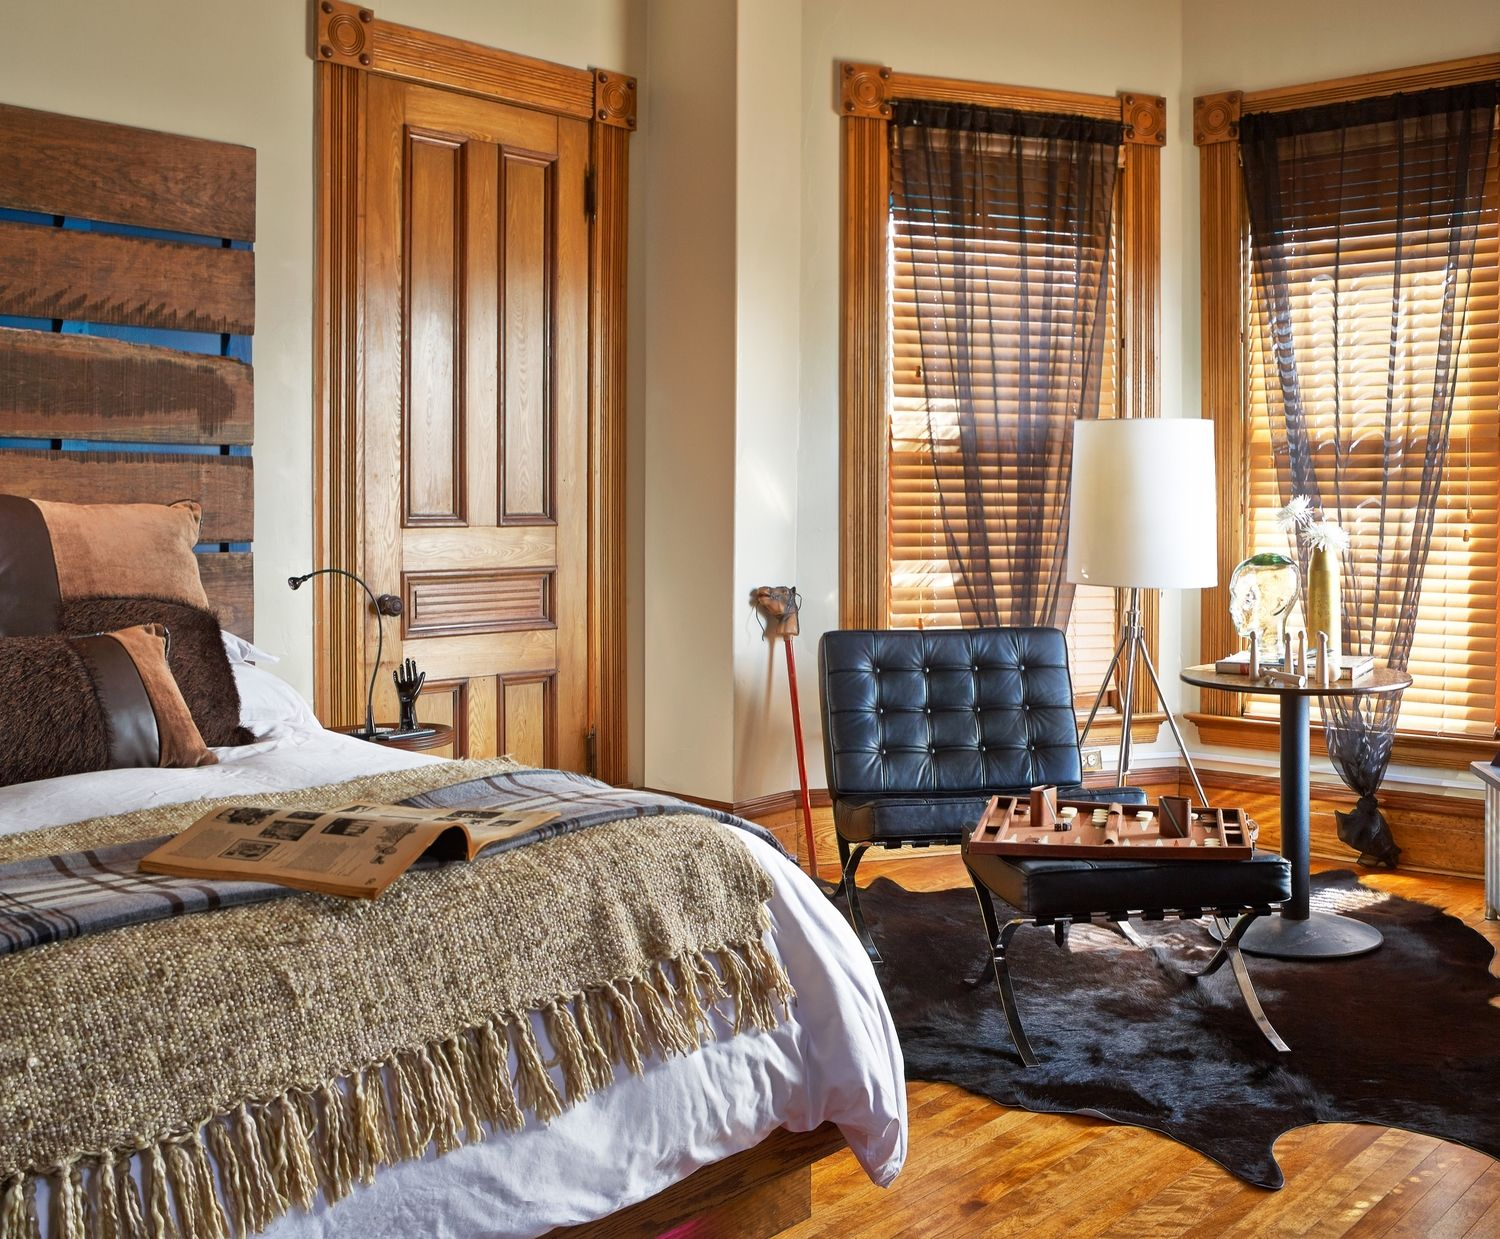 905.jpg Boutique bedding, Cozy room, Bed and breakfast